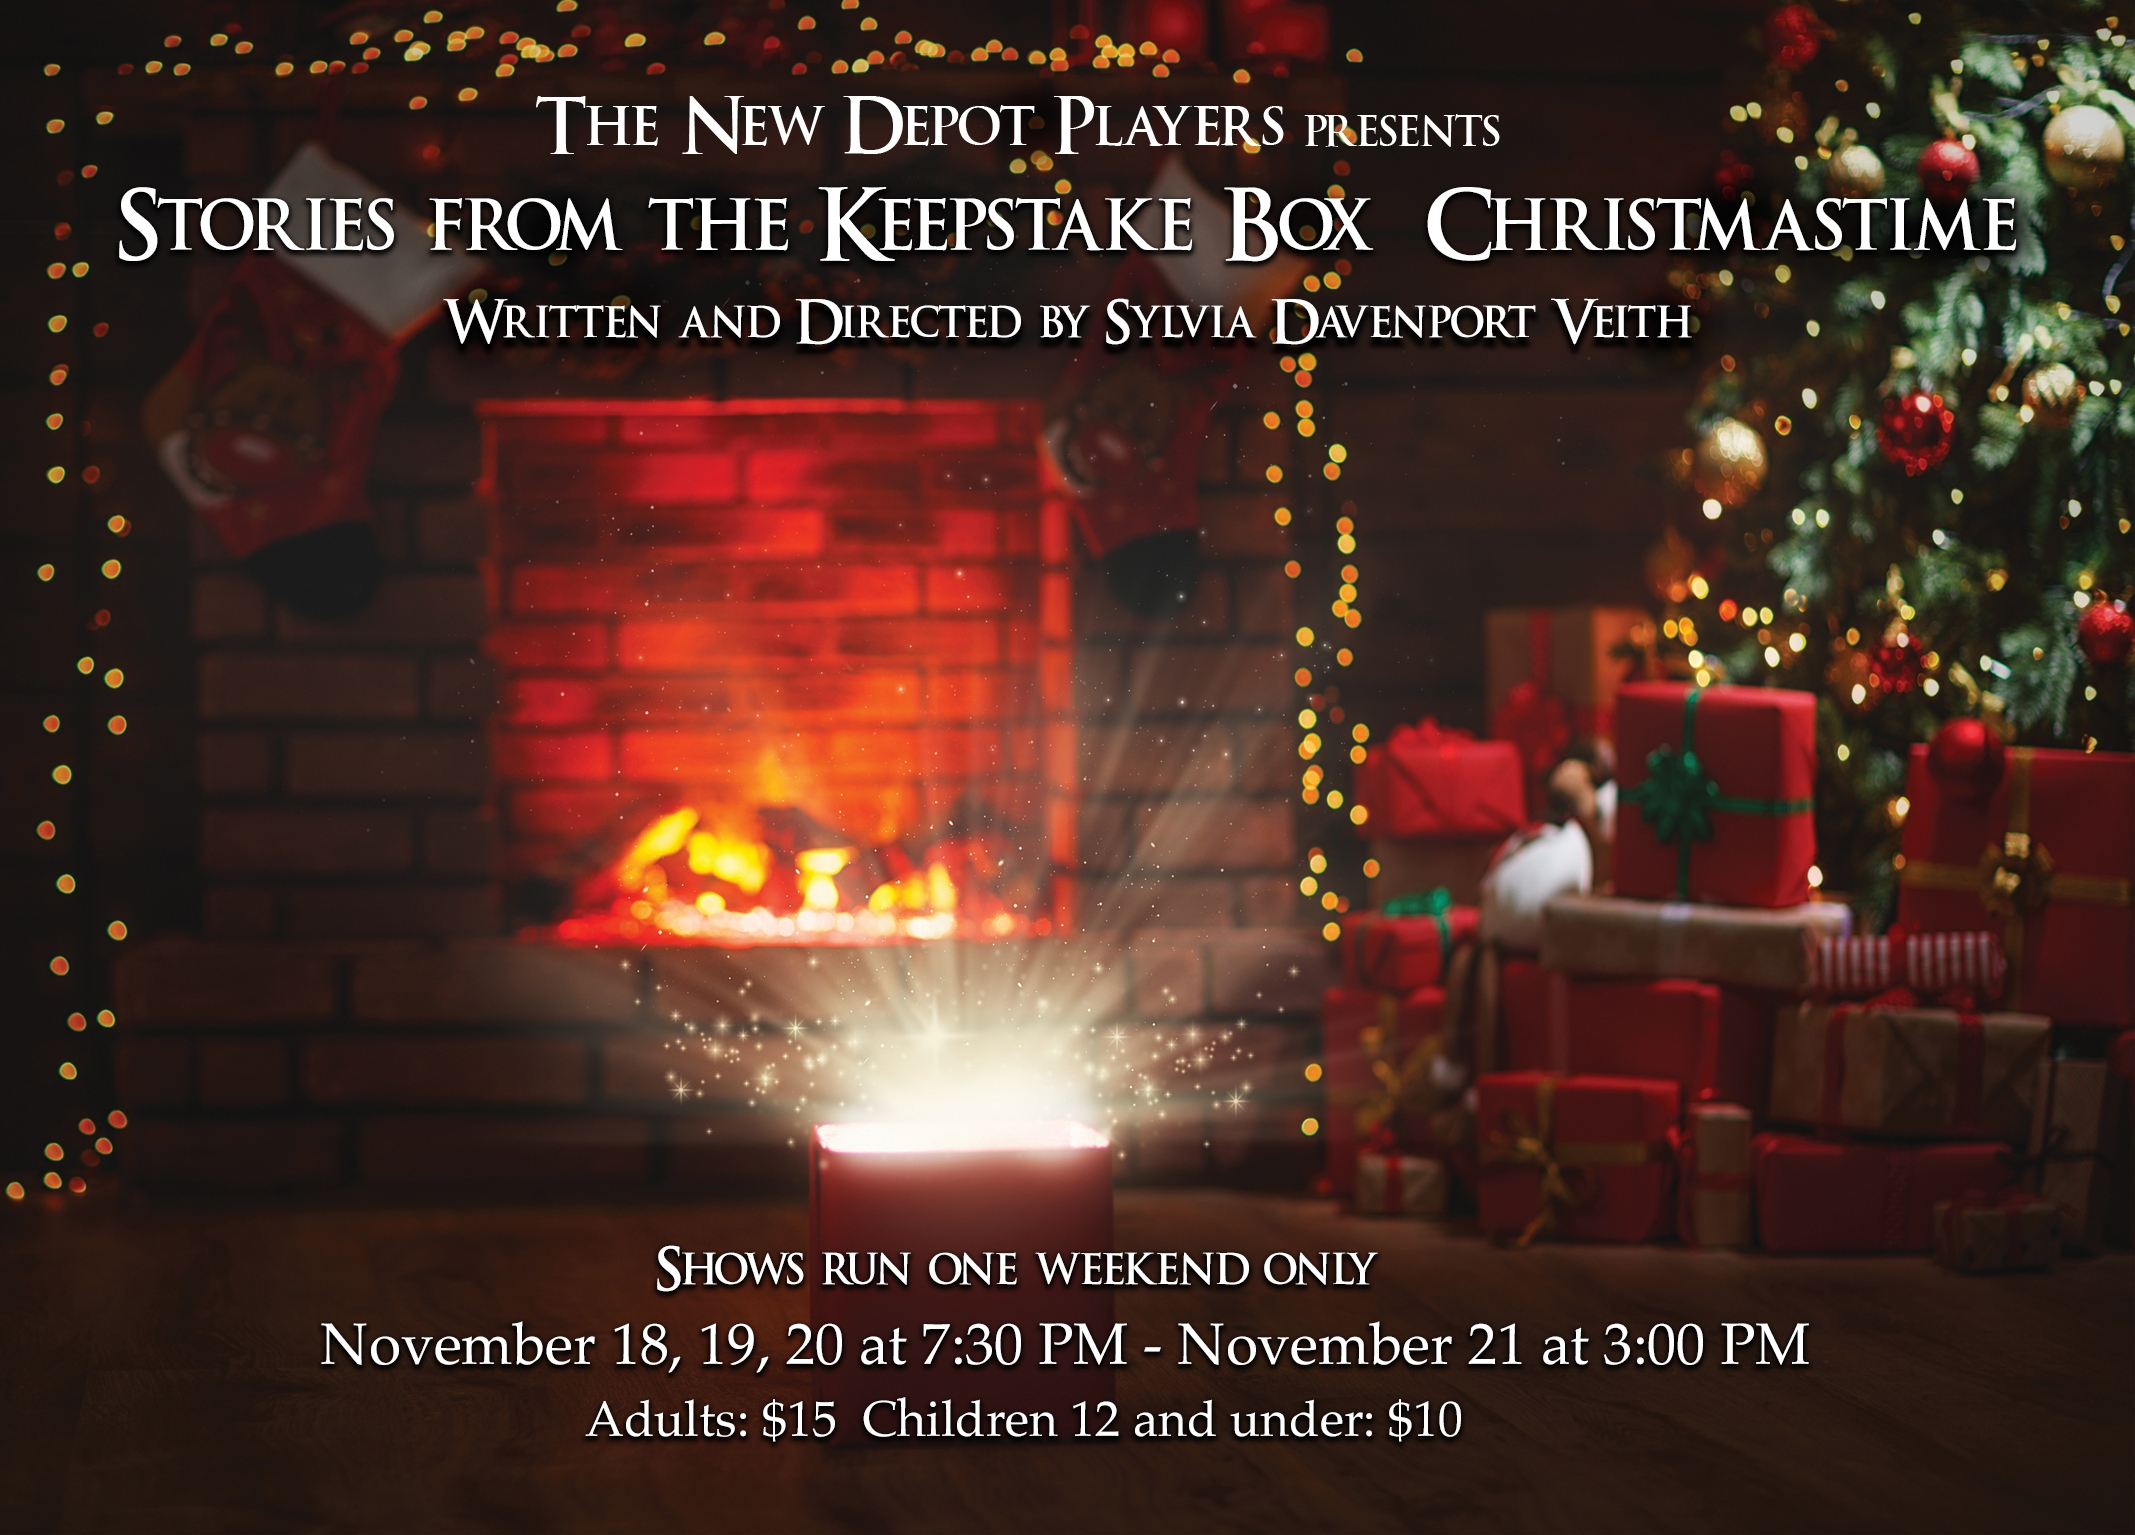 Stories from the Keepsake Box: Christmastime show picture